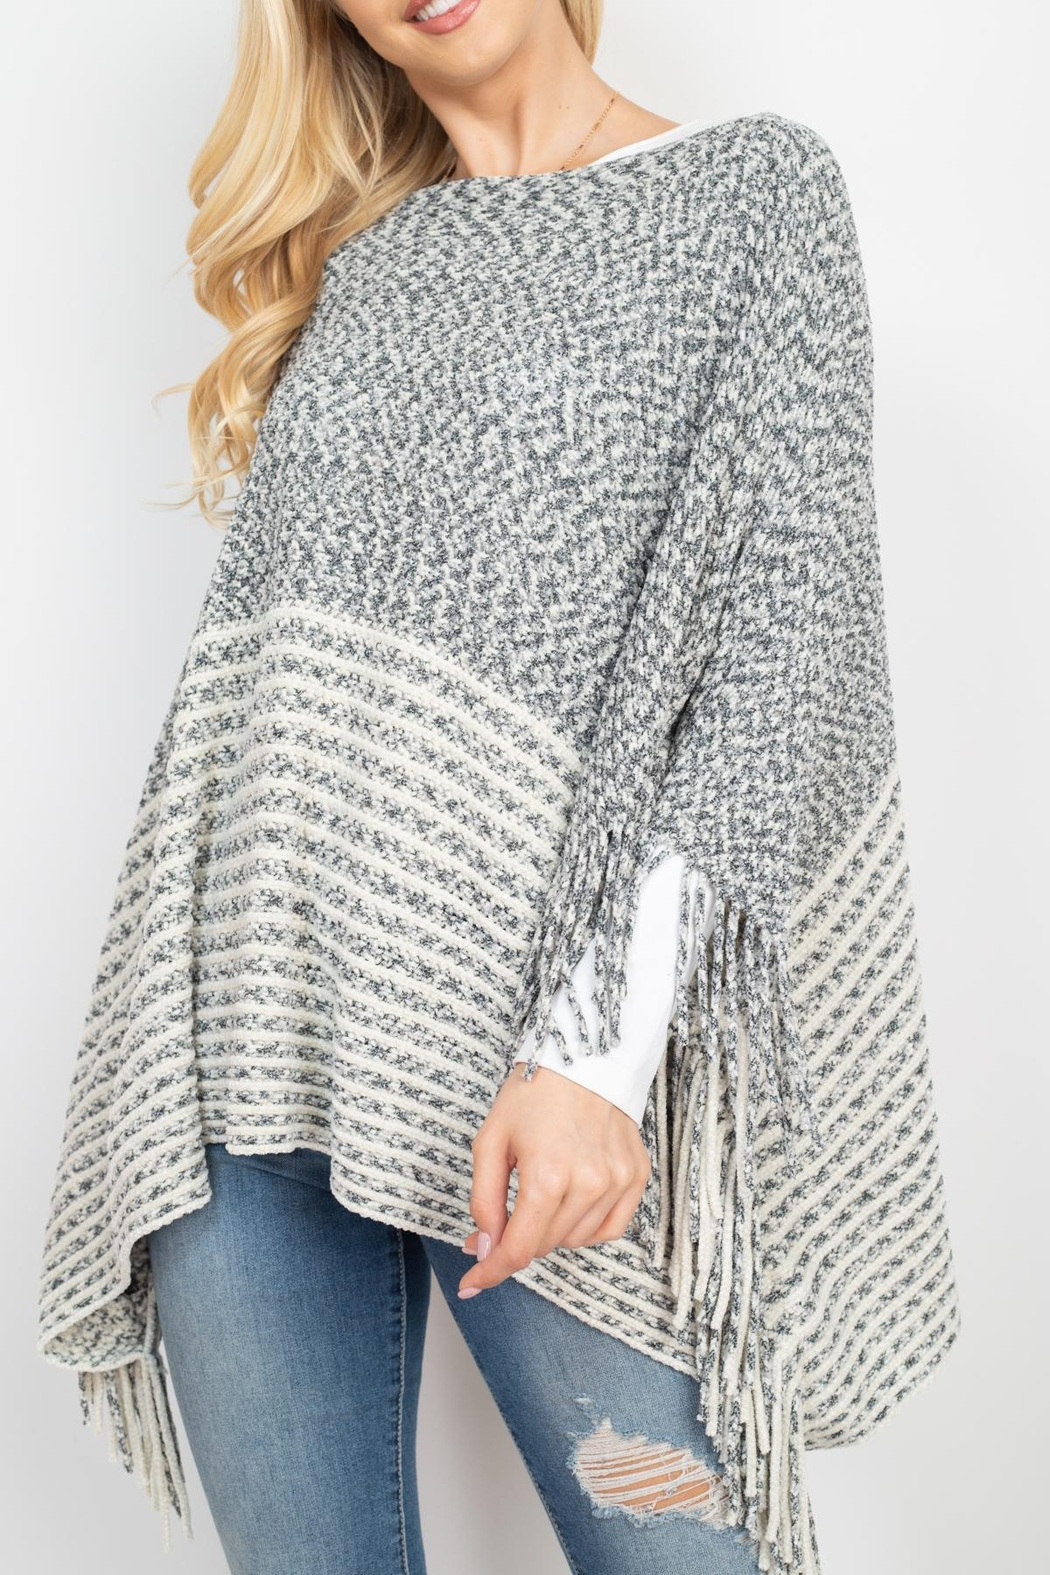 Riah Fashion Knitted-Two-Tone-Striped-Fringe-Poncho - Side Cropped Image